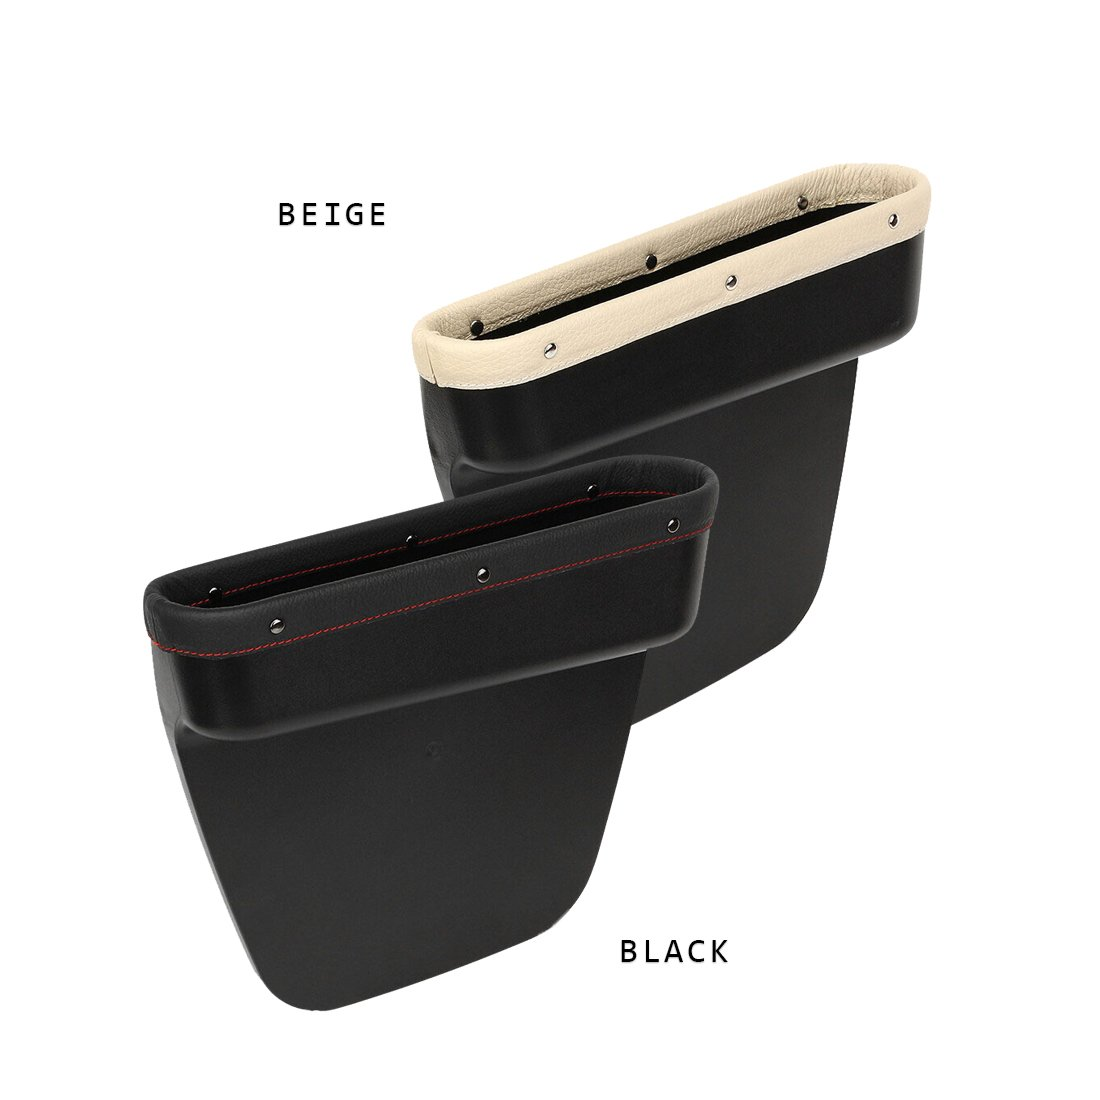 Black+Beige Pack of 1 PU Leather Car Seat Gap Filler Organizer Catcher with Cup Holder Console Side Pocket